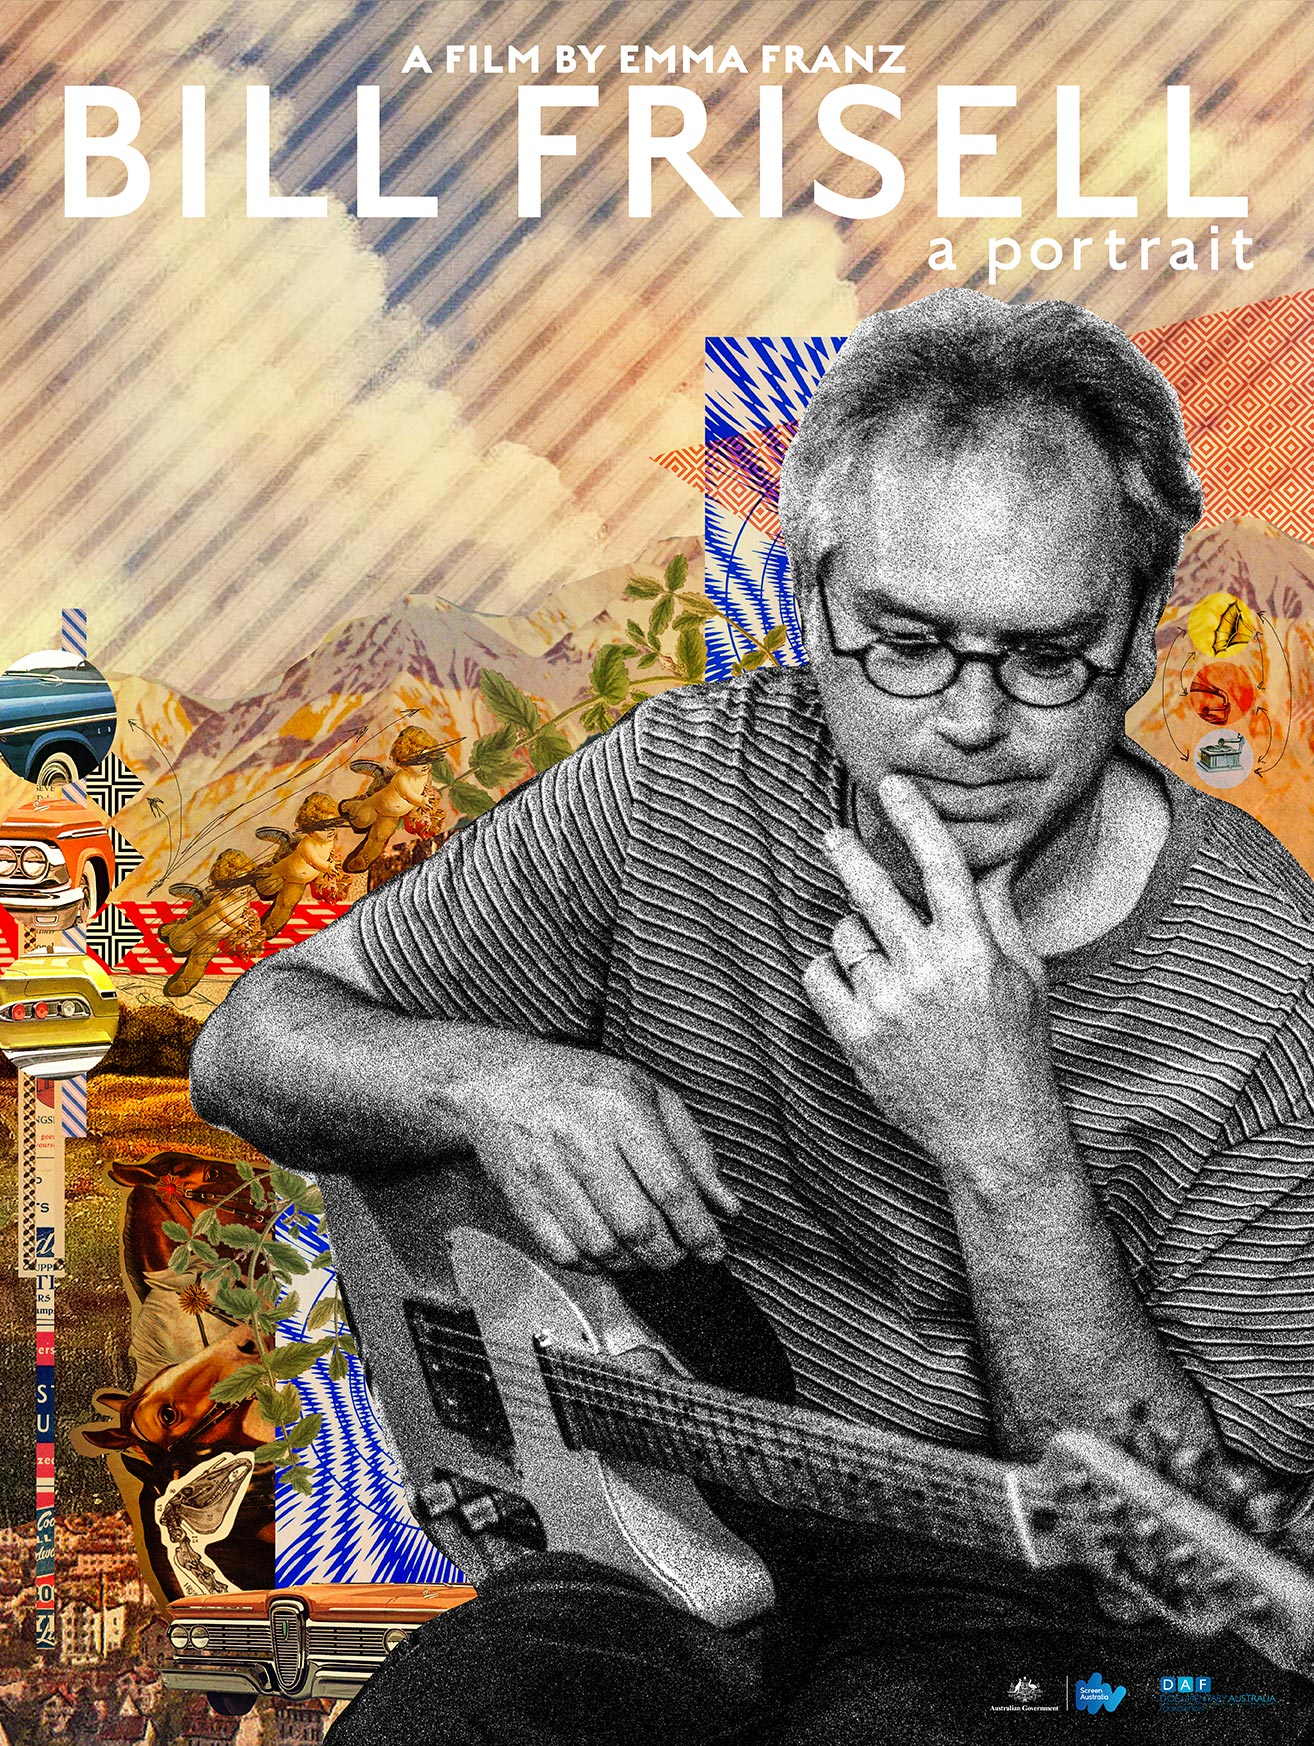 BillFrisell-APortrait-Poster-Final-web.jpg